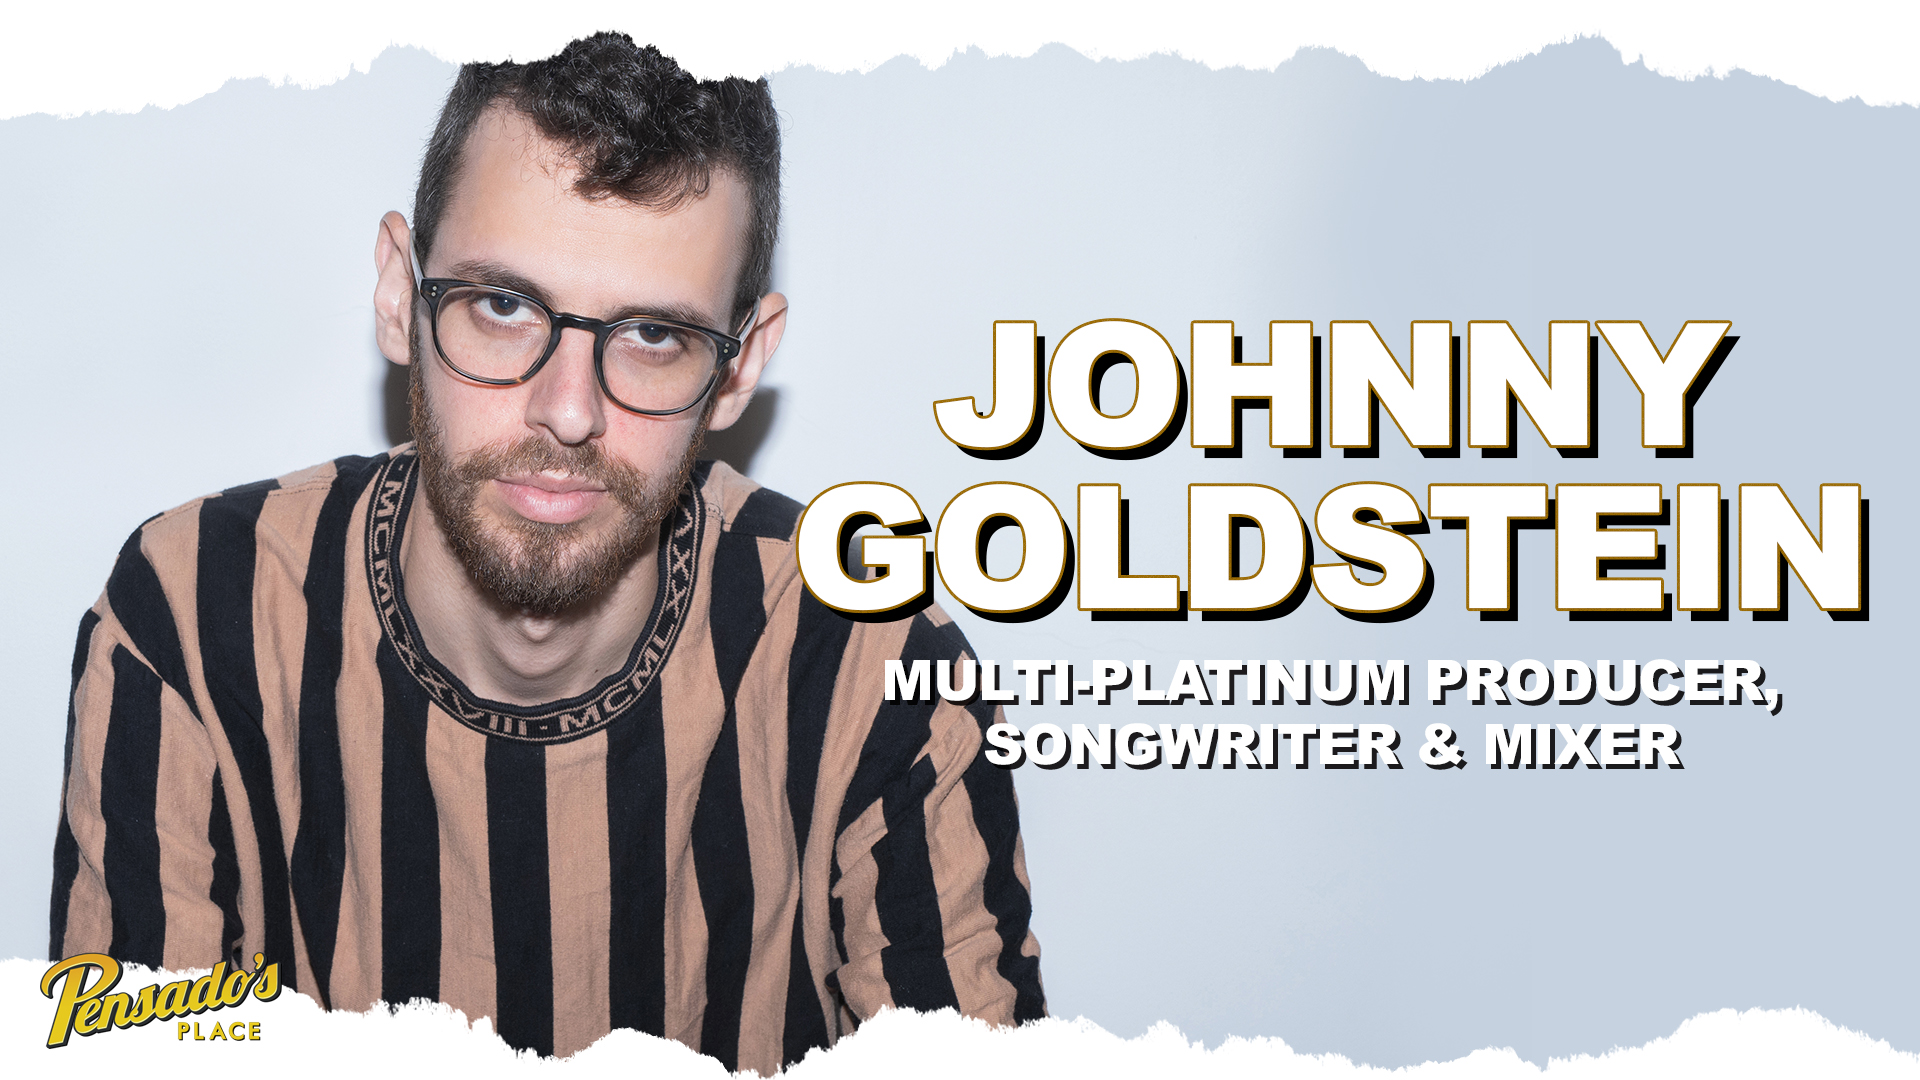 Multi-Platinum Producer / Songwriter / Mixer, Johnny Goldstein